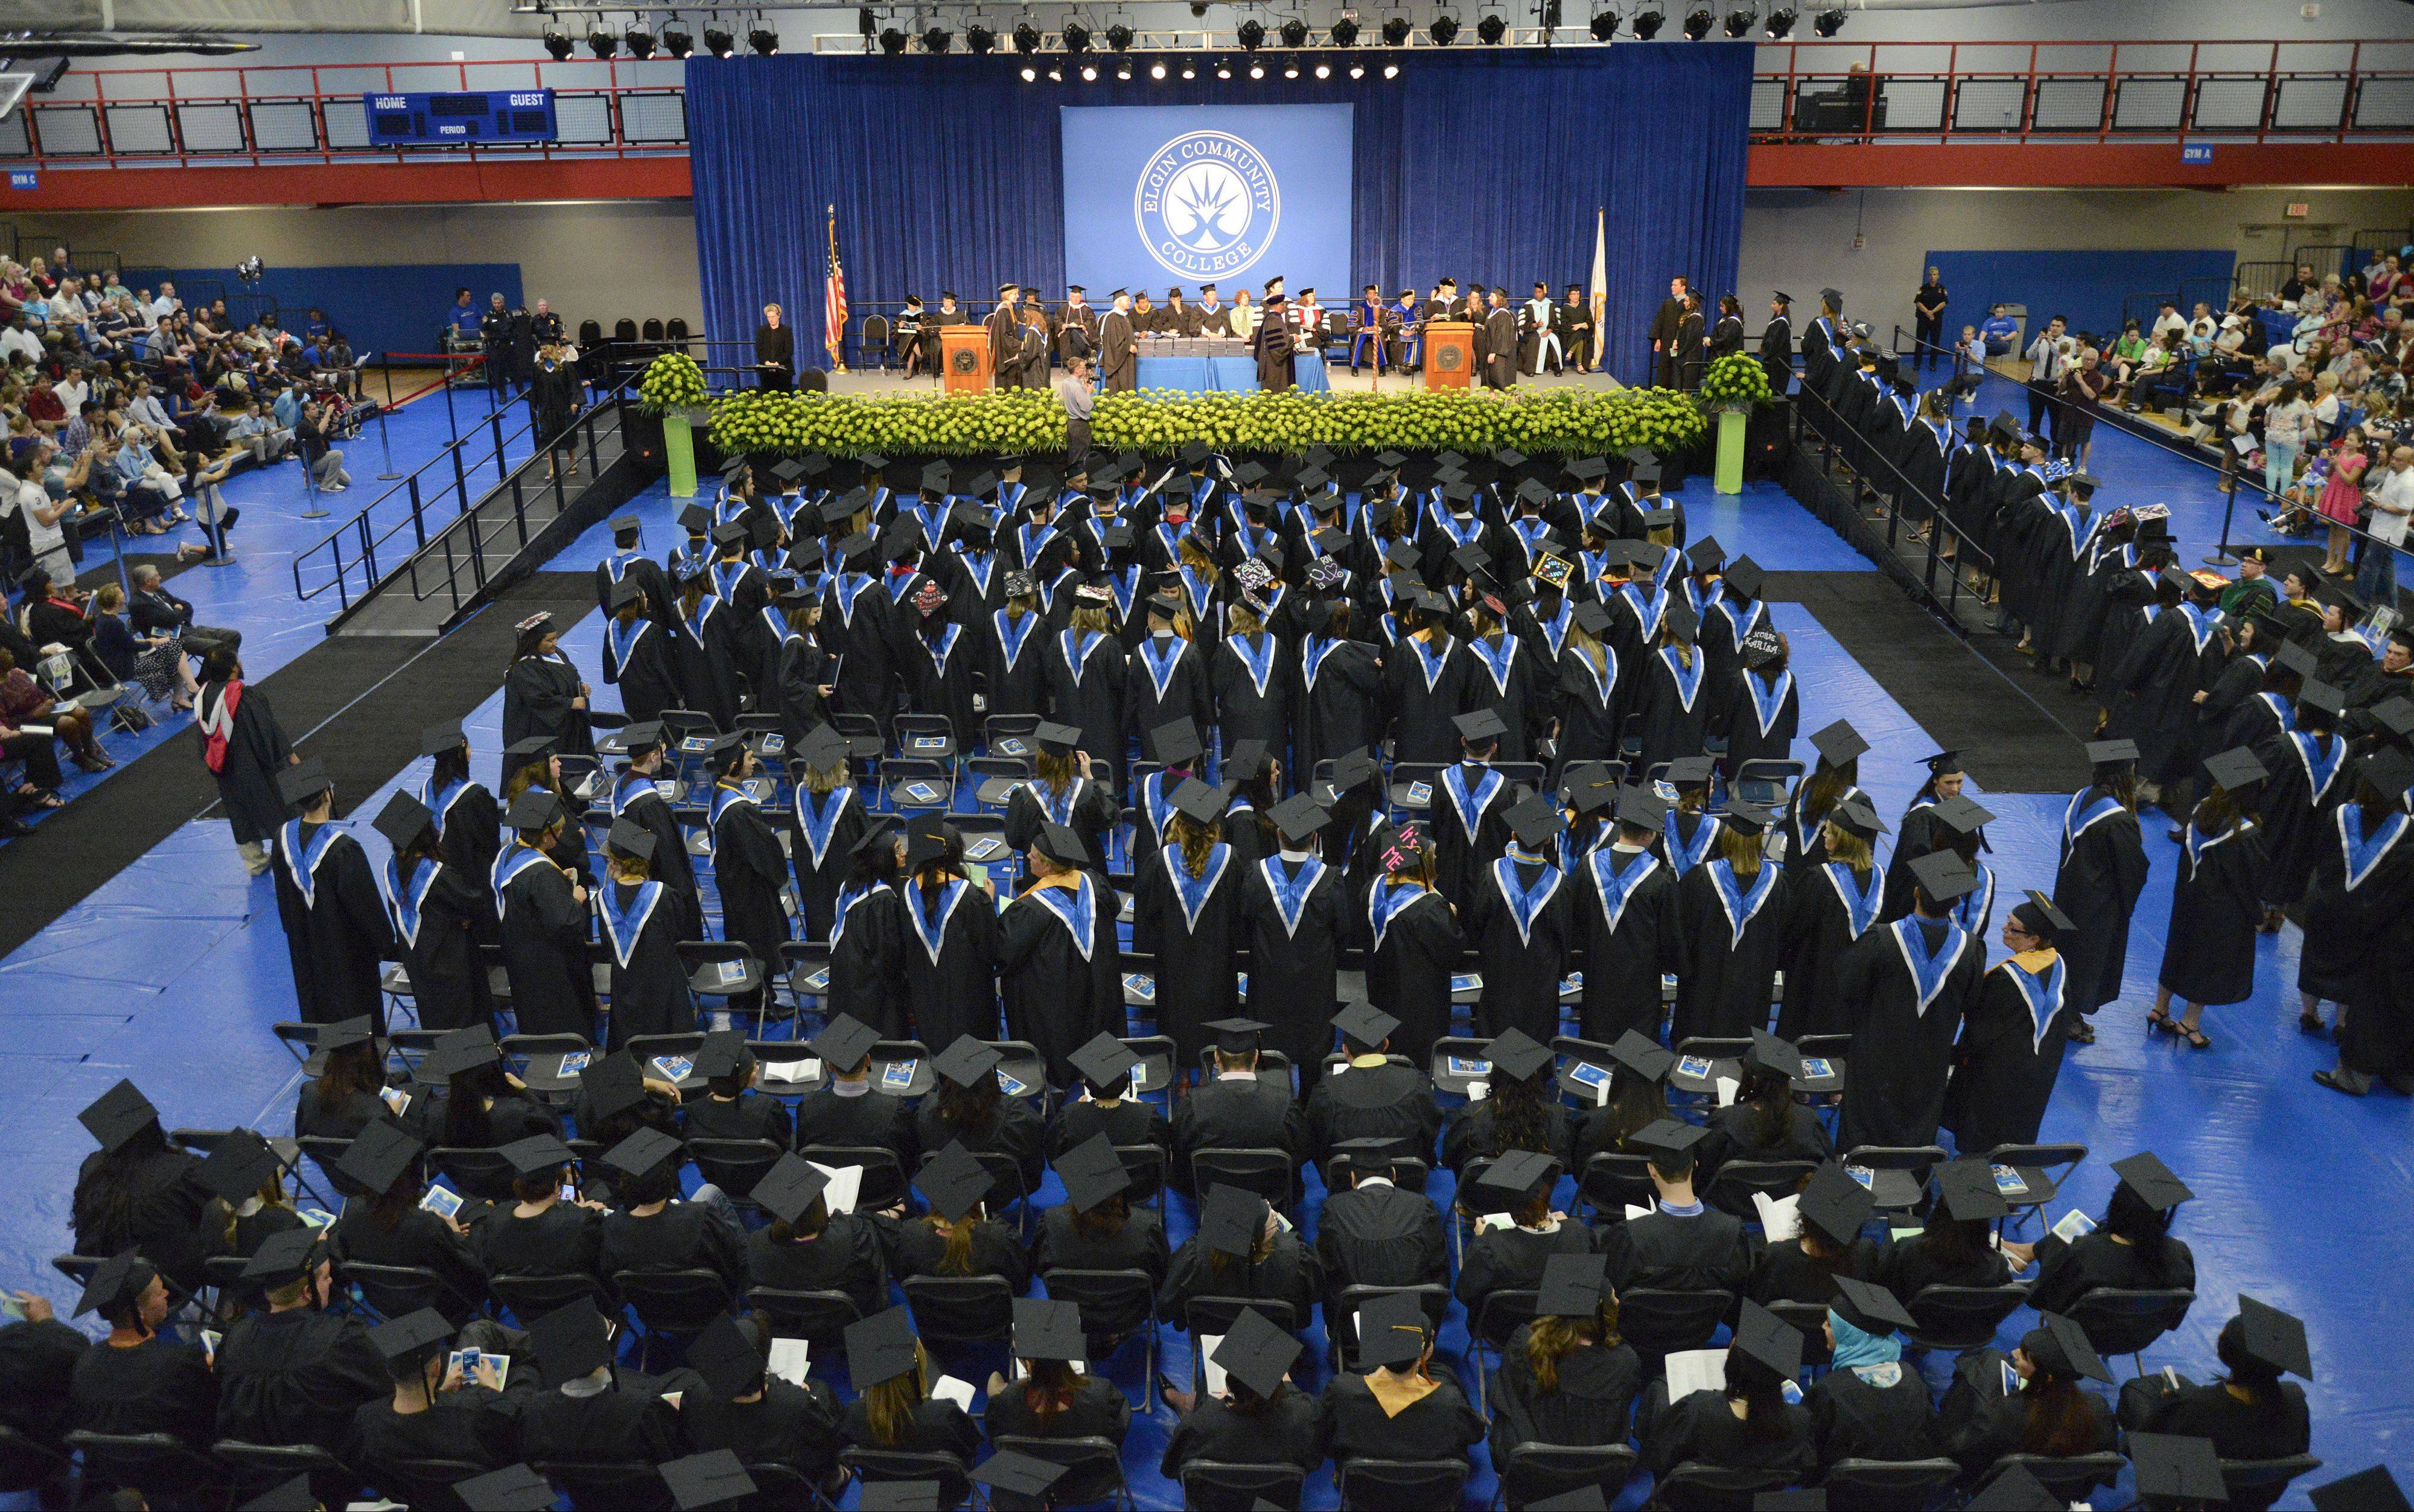 About 225 graduates received their diplomas at Elgin Community College's commencement ceremony on May 18.